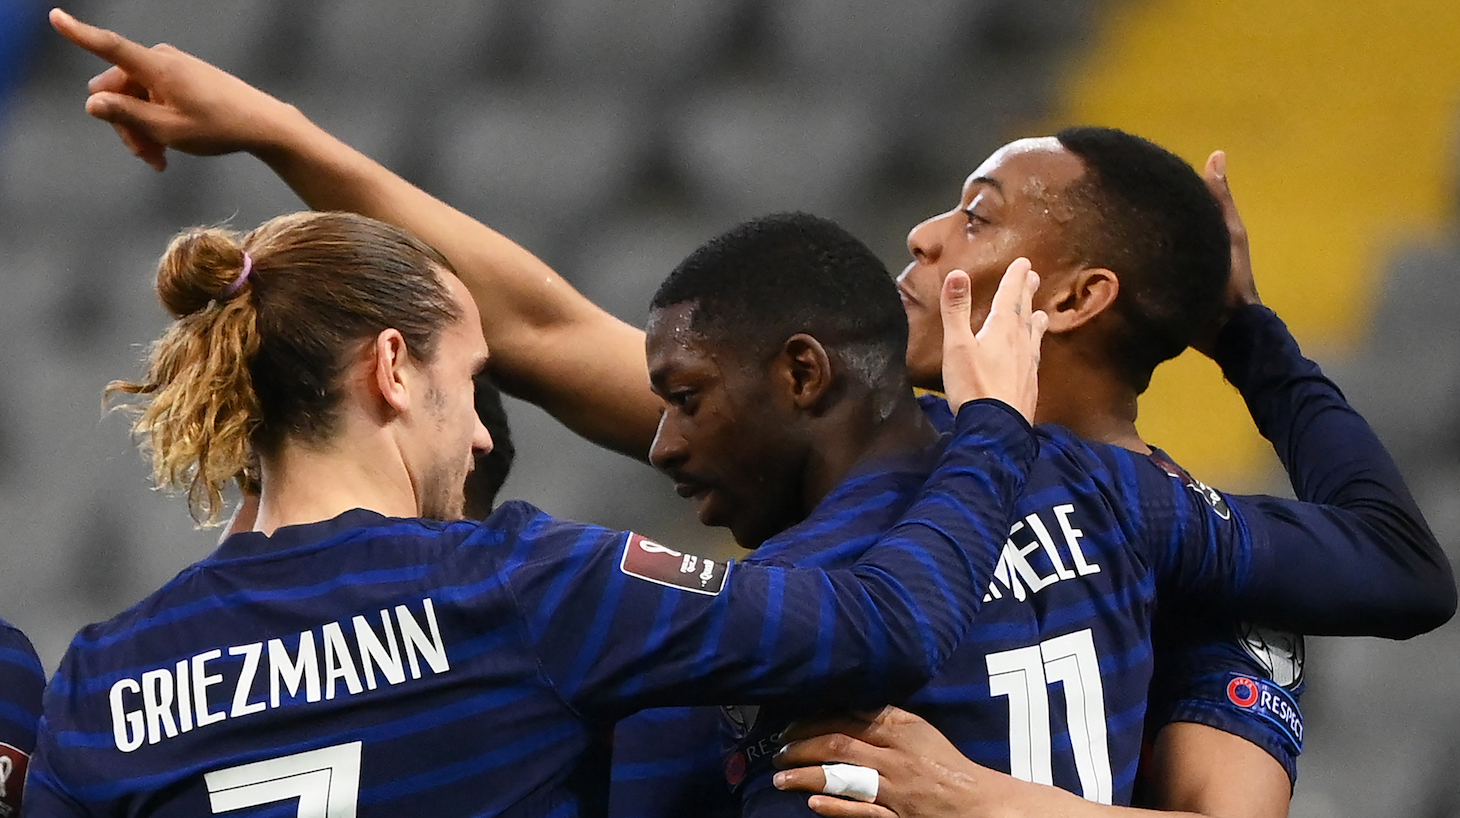 France's forward Ousmane Dembele (C) celebrates with France's forward Antoine Griezmann (L) and France's forward Anthony Martial (R) teammates after scoring a goal during the FIFA World Cup Qatar 2022 qualification Group D football match between Kazakhstan and France, at the Astana Arena, in Nur-Sultan, on March 28, 2021.